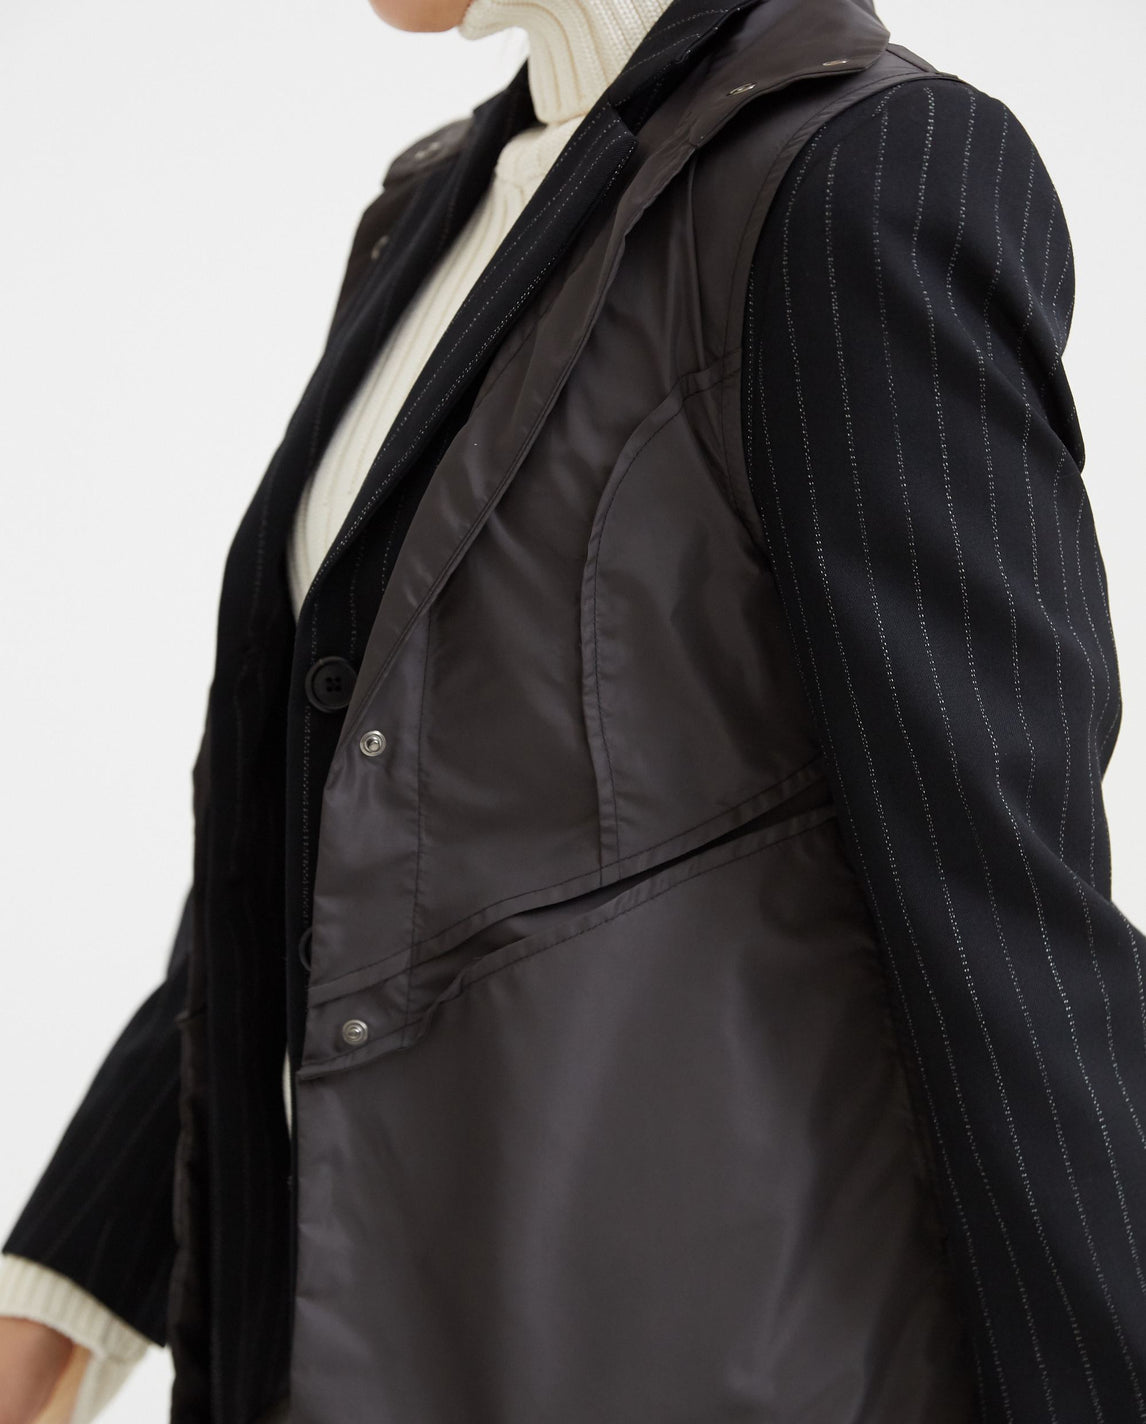 Blazer with Nylon Vest - Black WOMENS DELADA